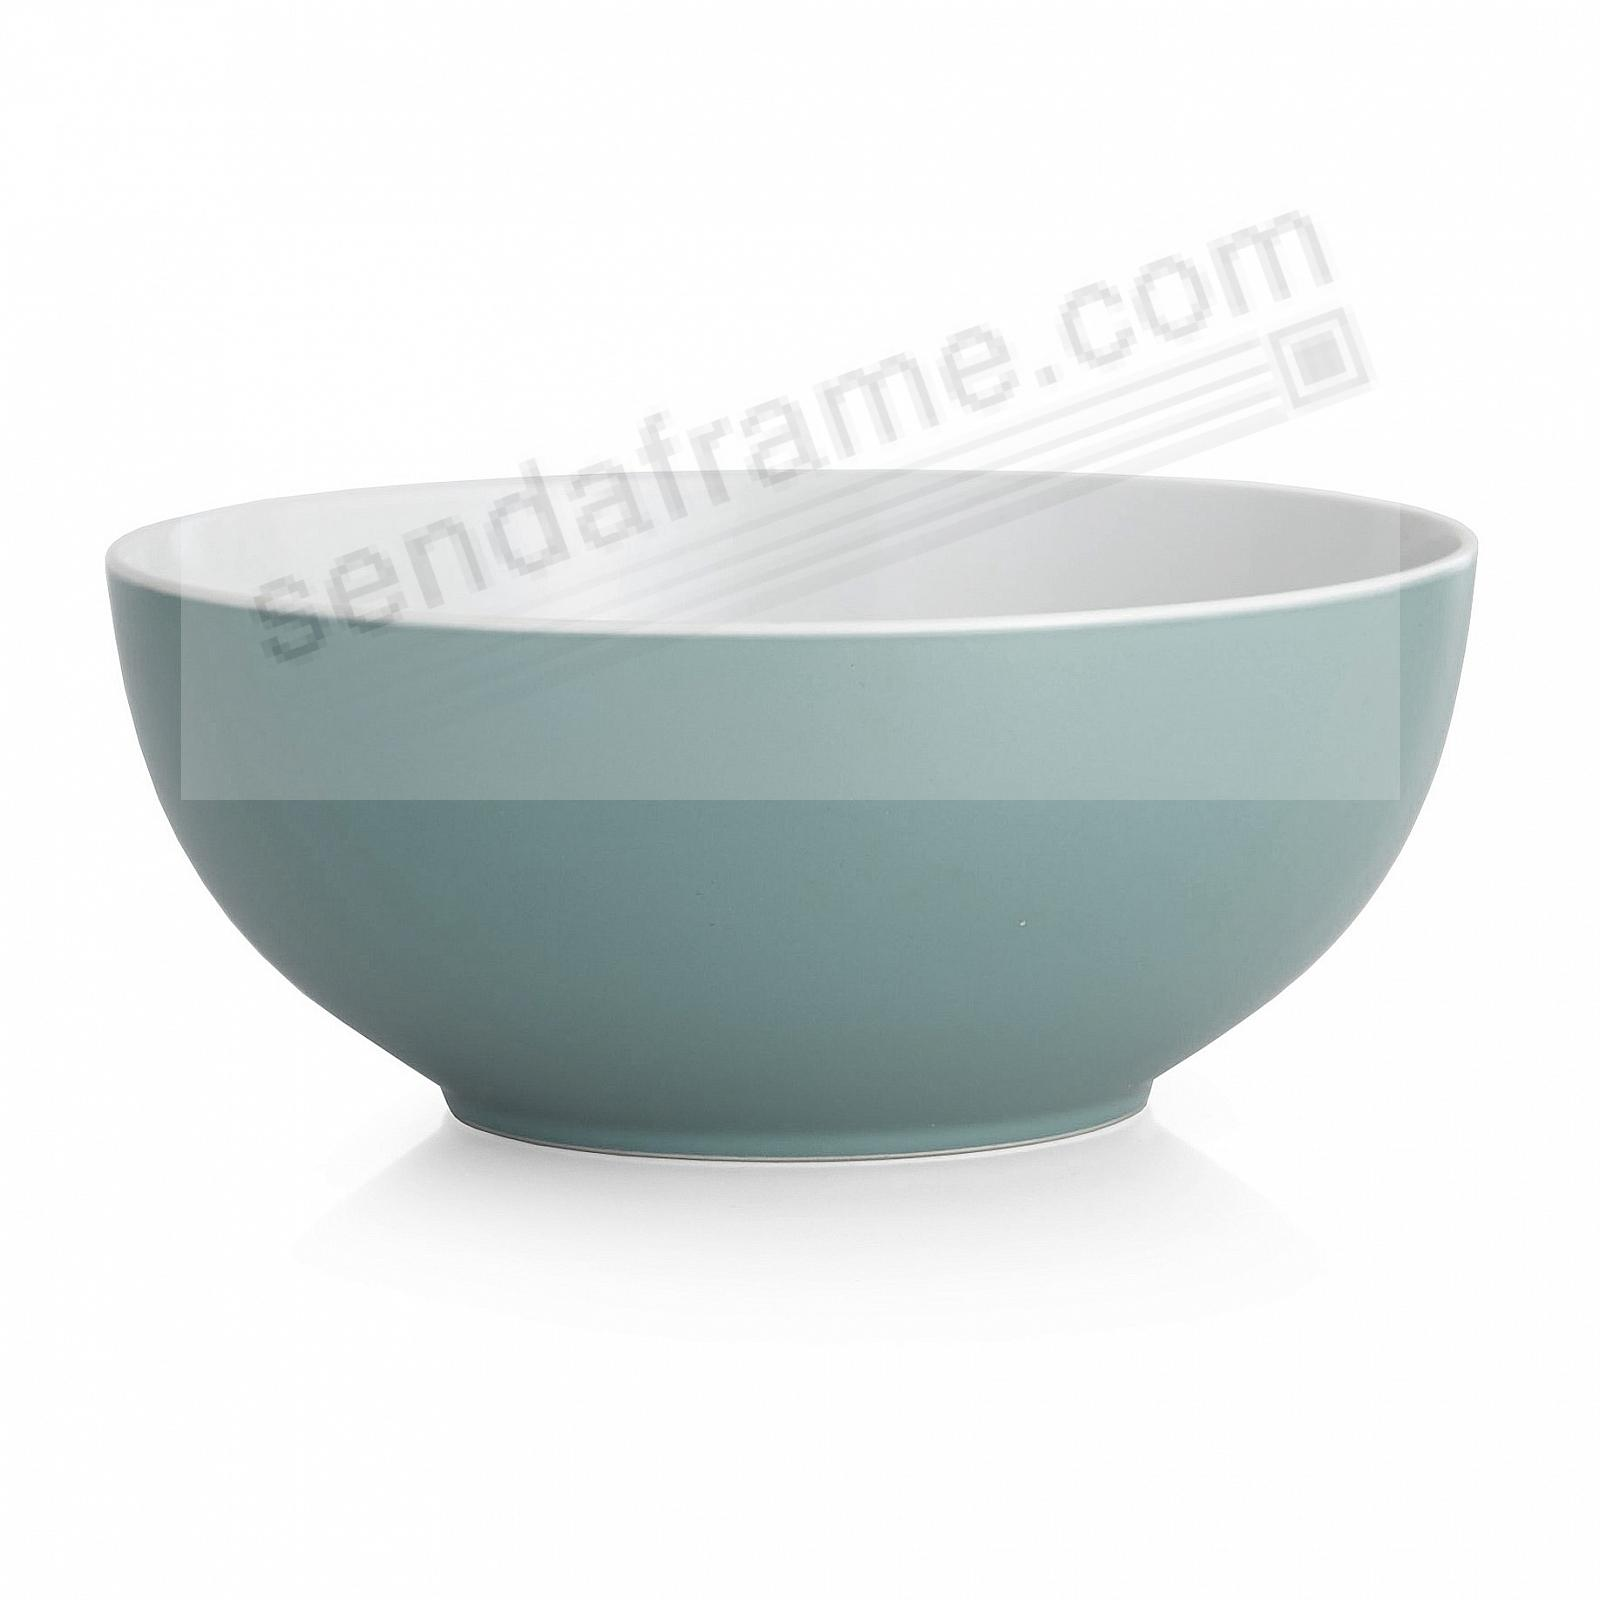 POP DEEP SERVING 9in BOWL OCEAN-BLUE by Nambe®